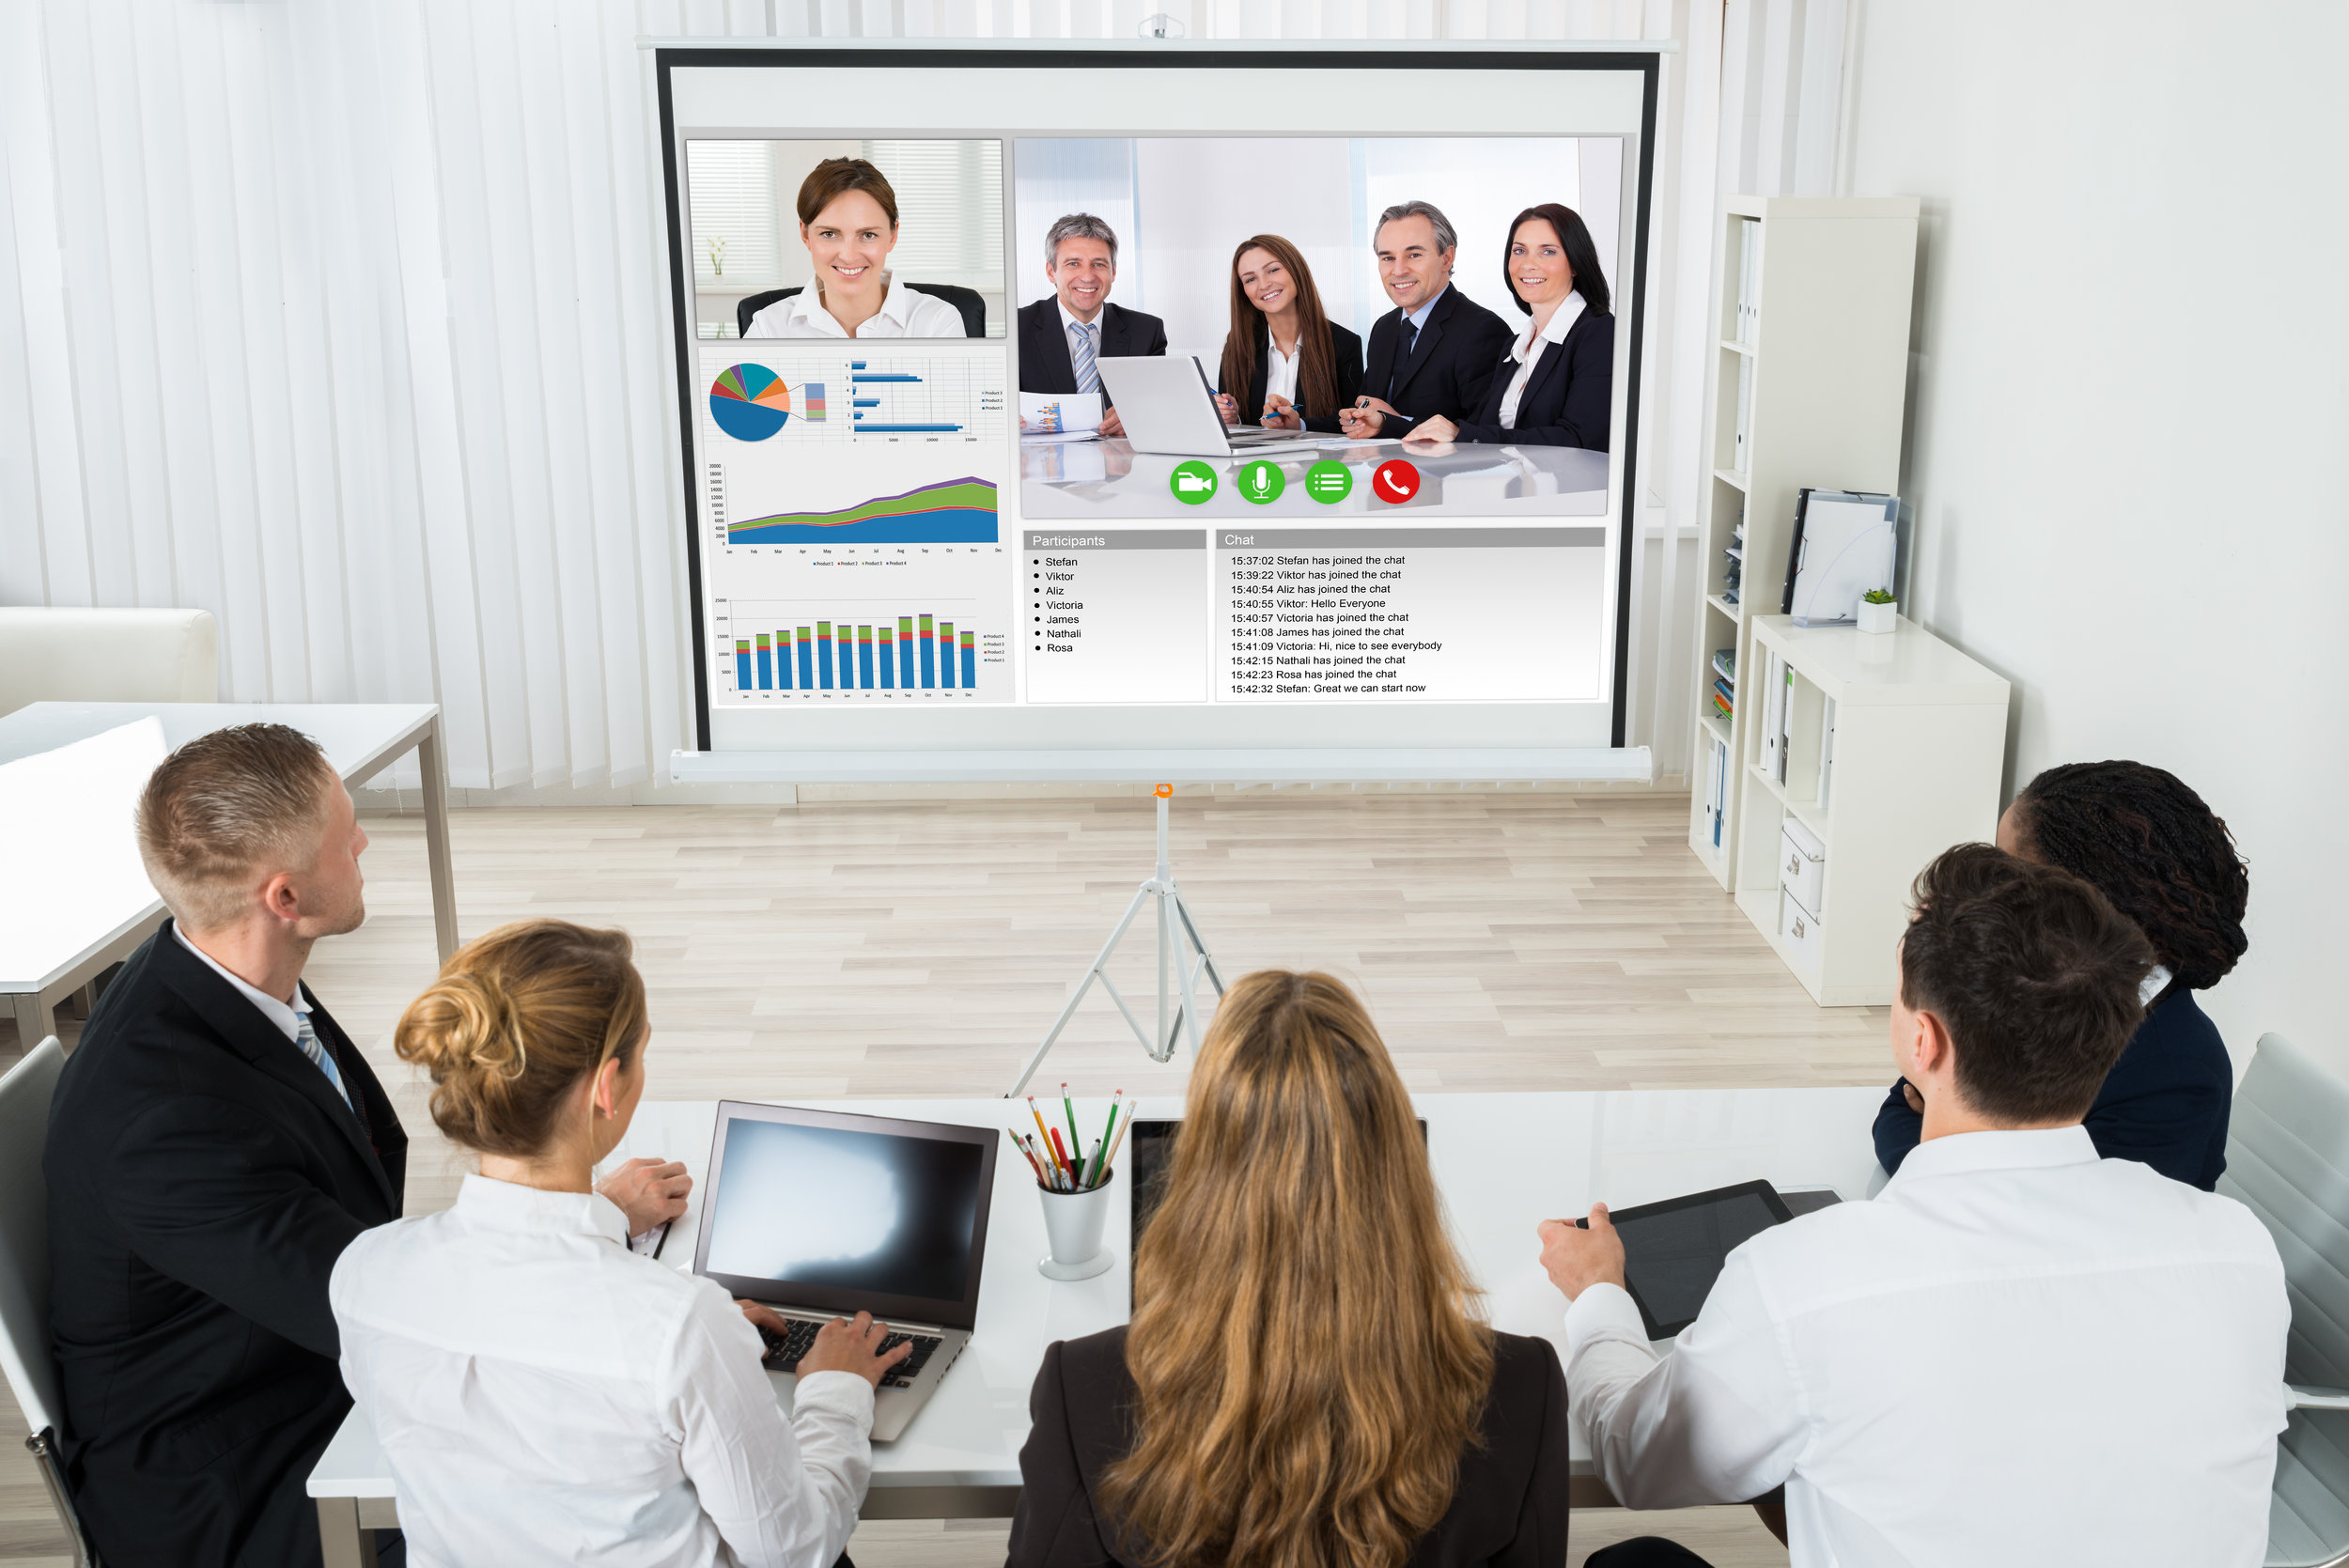 Smartboards - Smart boards are a revolution in any multi site business. By combining the power of a digital board that transmits anything written on it to all other boards and video conferencing, you have the perfect solution for fast collaboration..